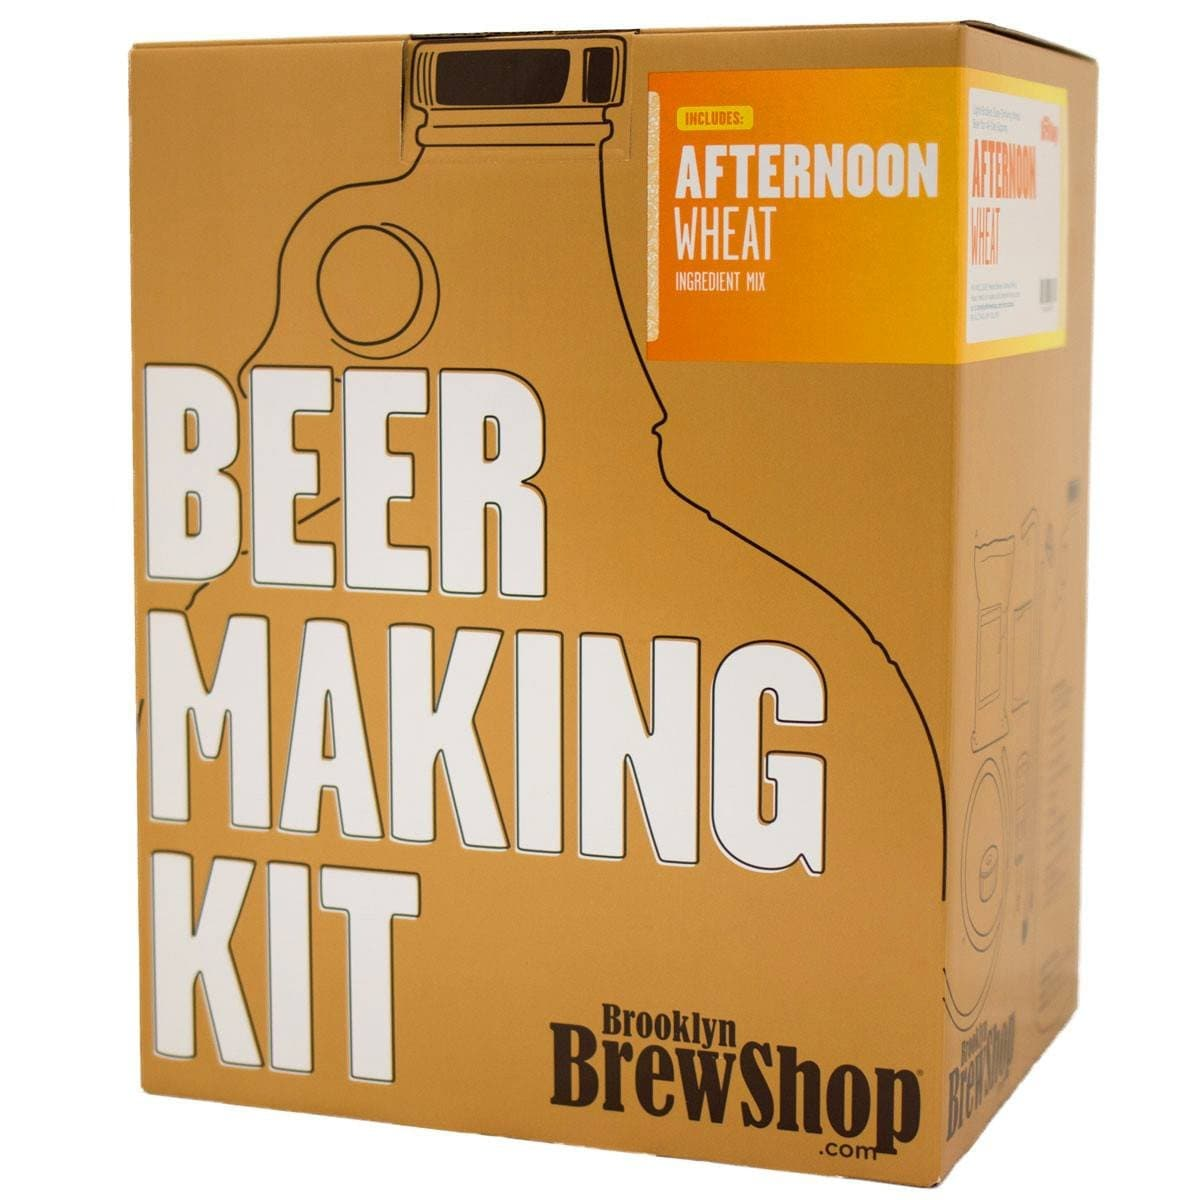 Brooklyn Brew Shop | Beer Making Kits For Brewing At Home